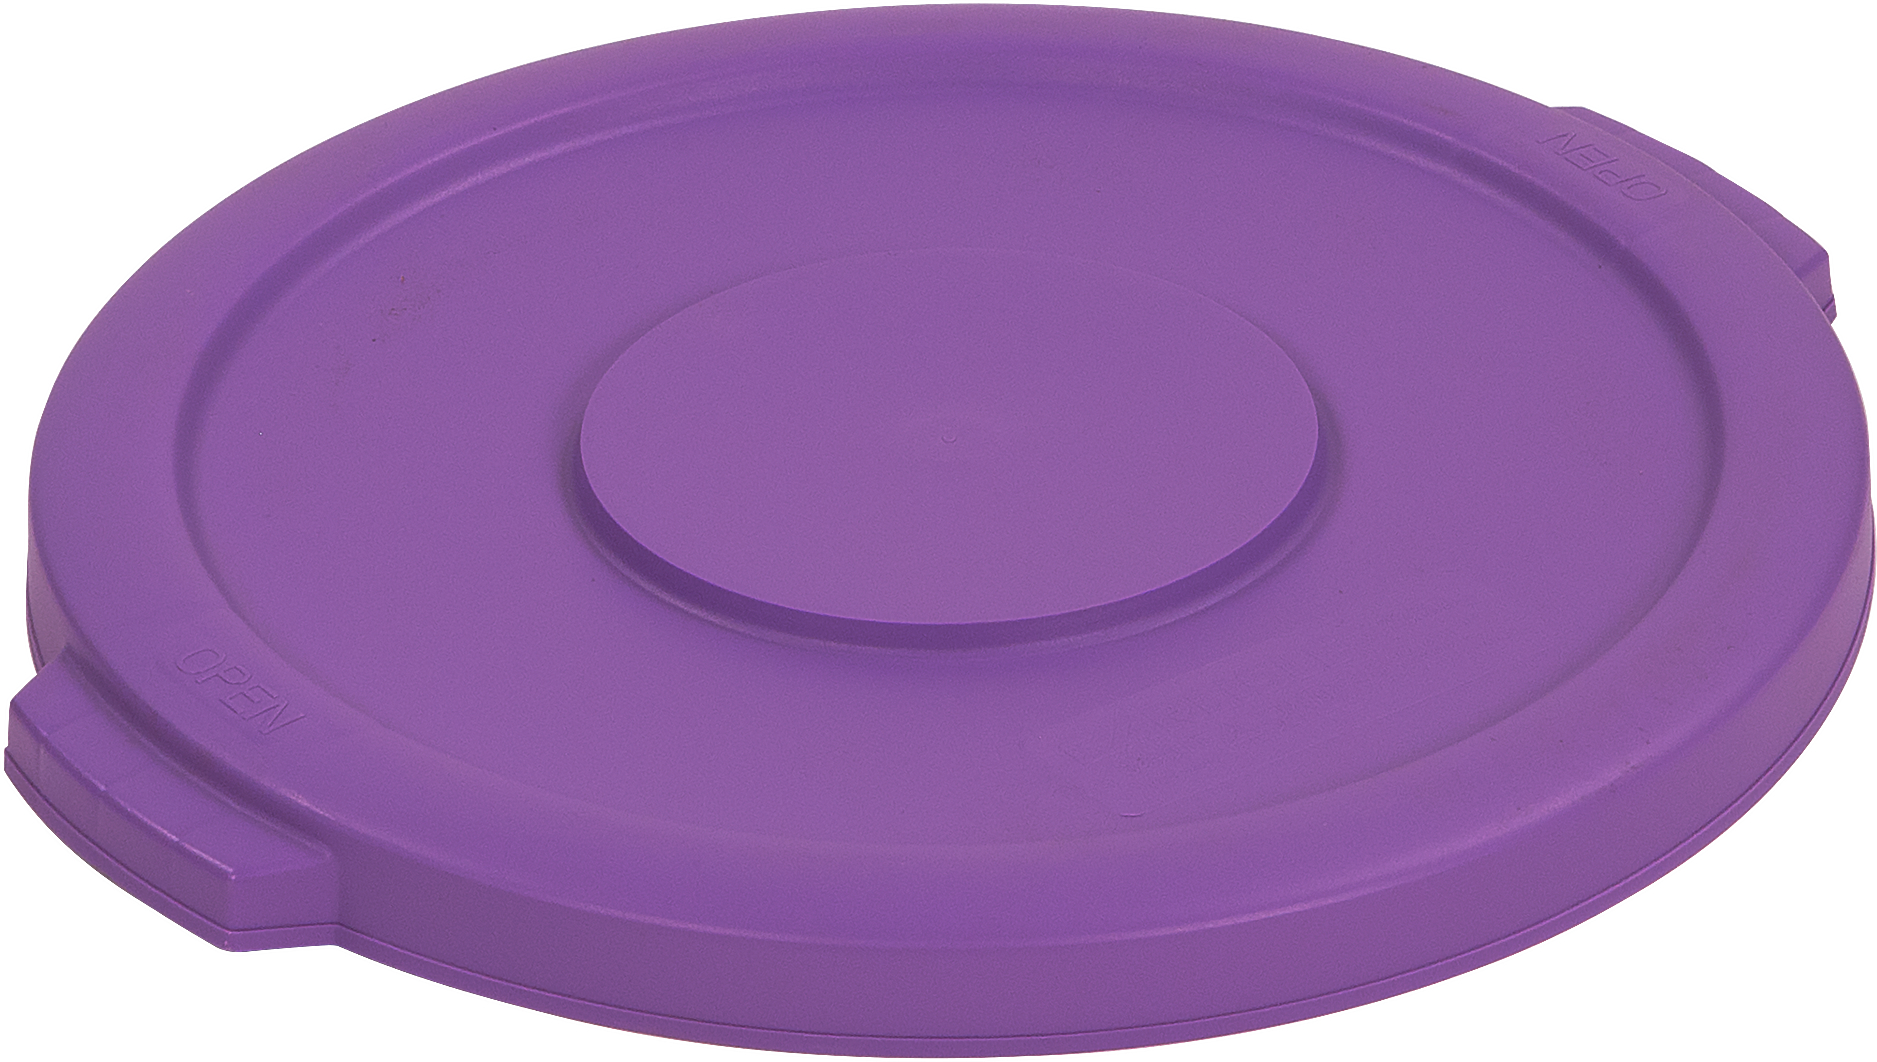 Bronco Round Waste Bin Food Container Lid 10 Gallon - Purple